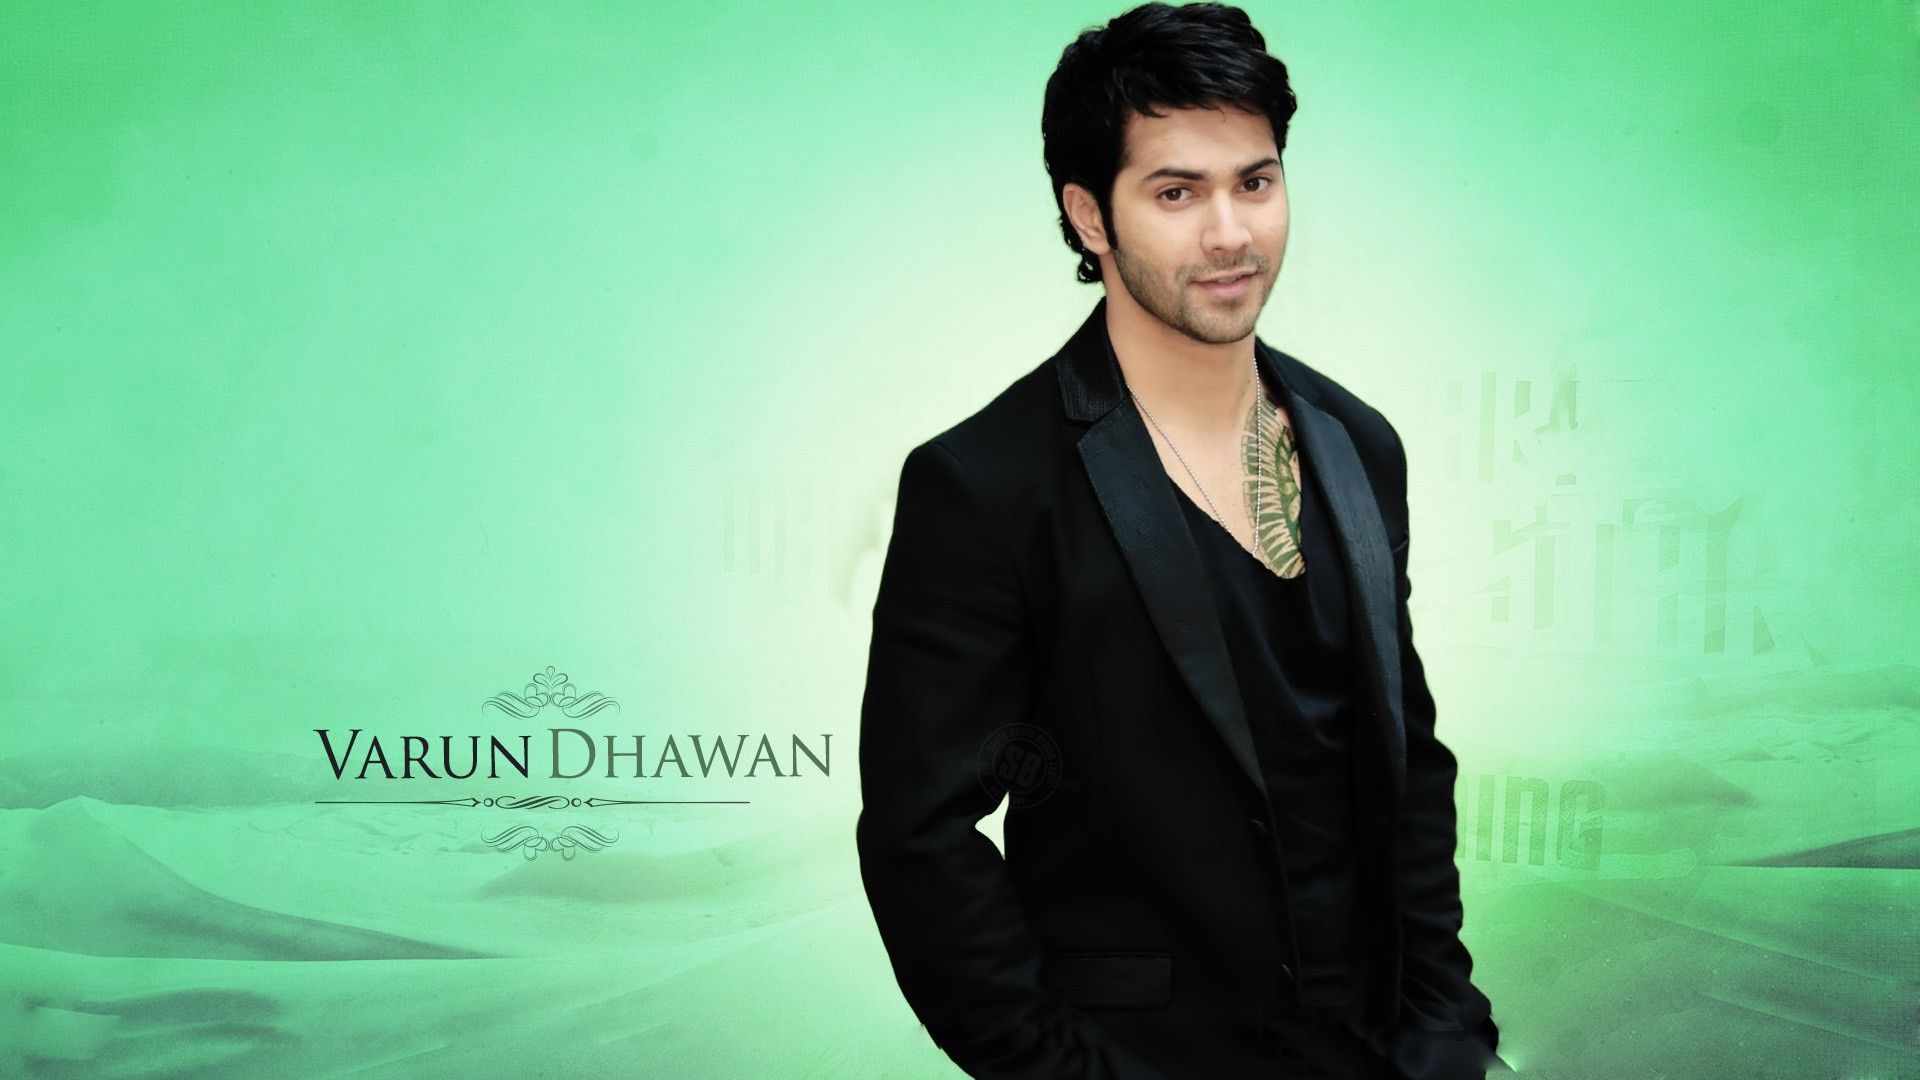 Wallpaper download bollywood actors - Varun Dhawan Wallpapers High Resolution And Quality Download Varun Dhawan Wallpaperbollywood Actorshd Wallpaperresolutions